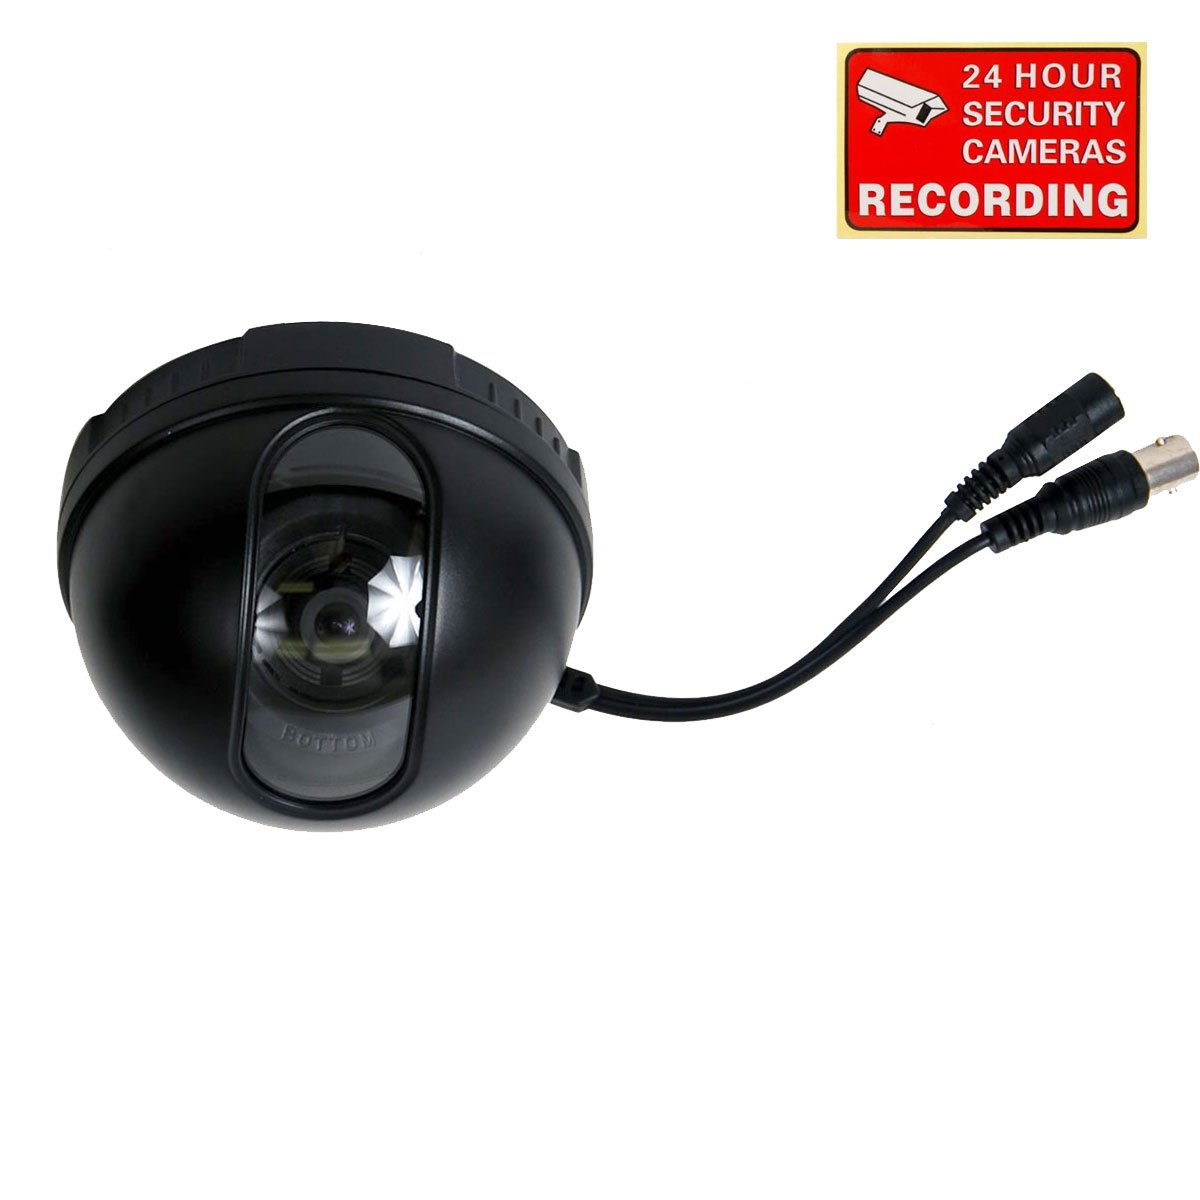 Amazon.com : VideoSecu Dome Security Camera Color CCD DSP CCTV 3.6 ...